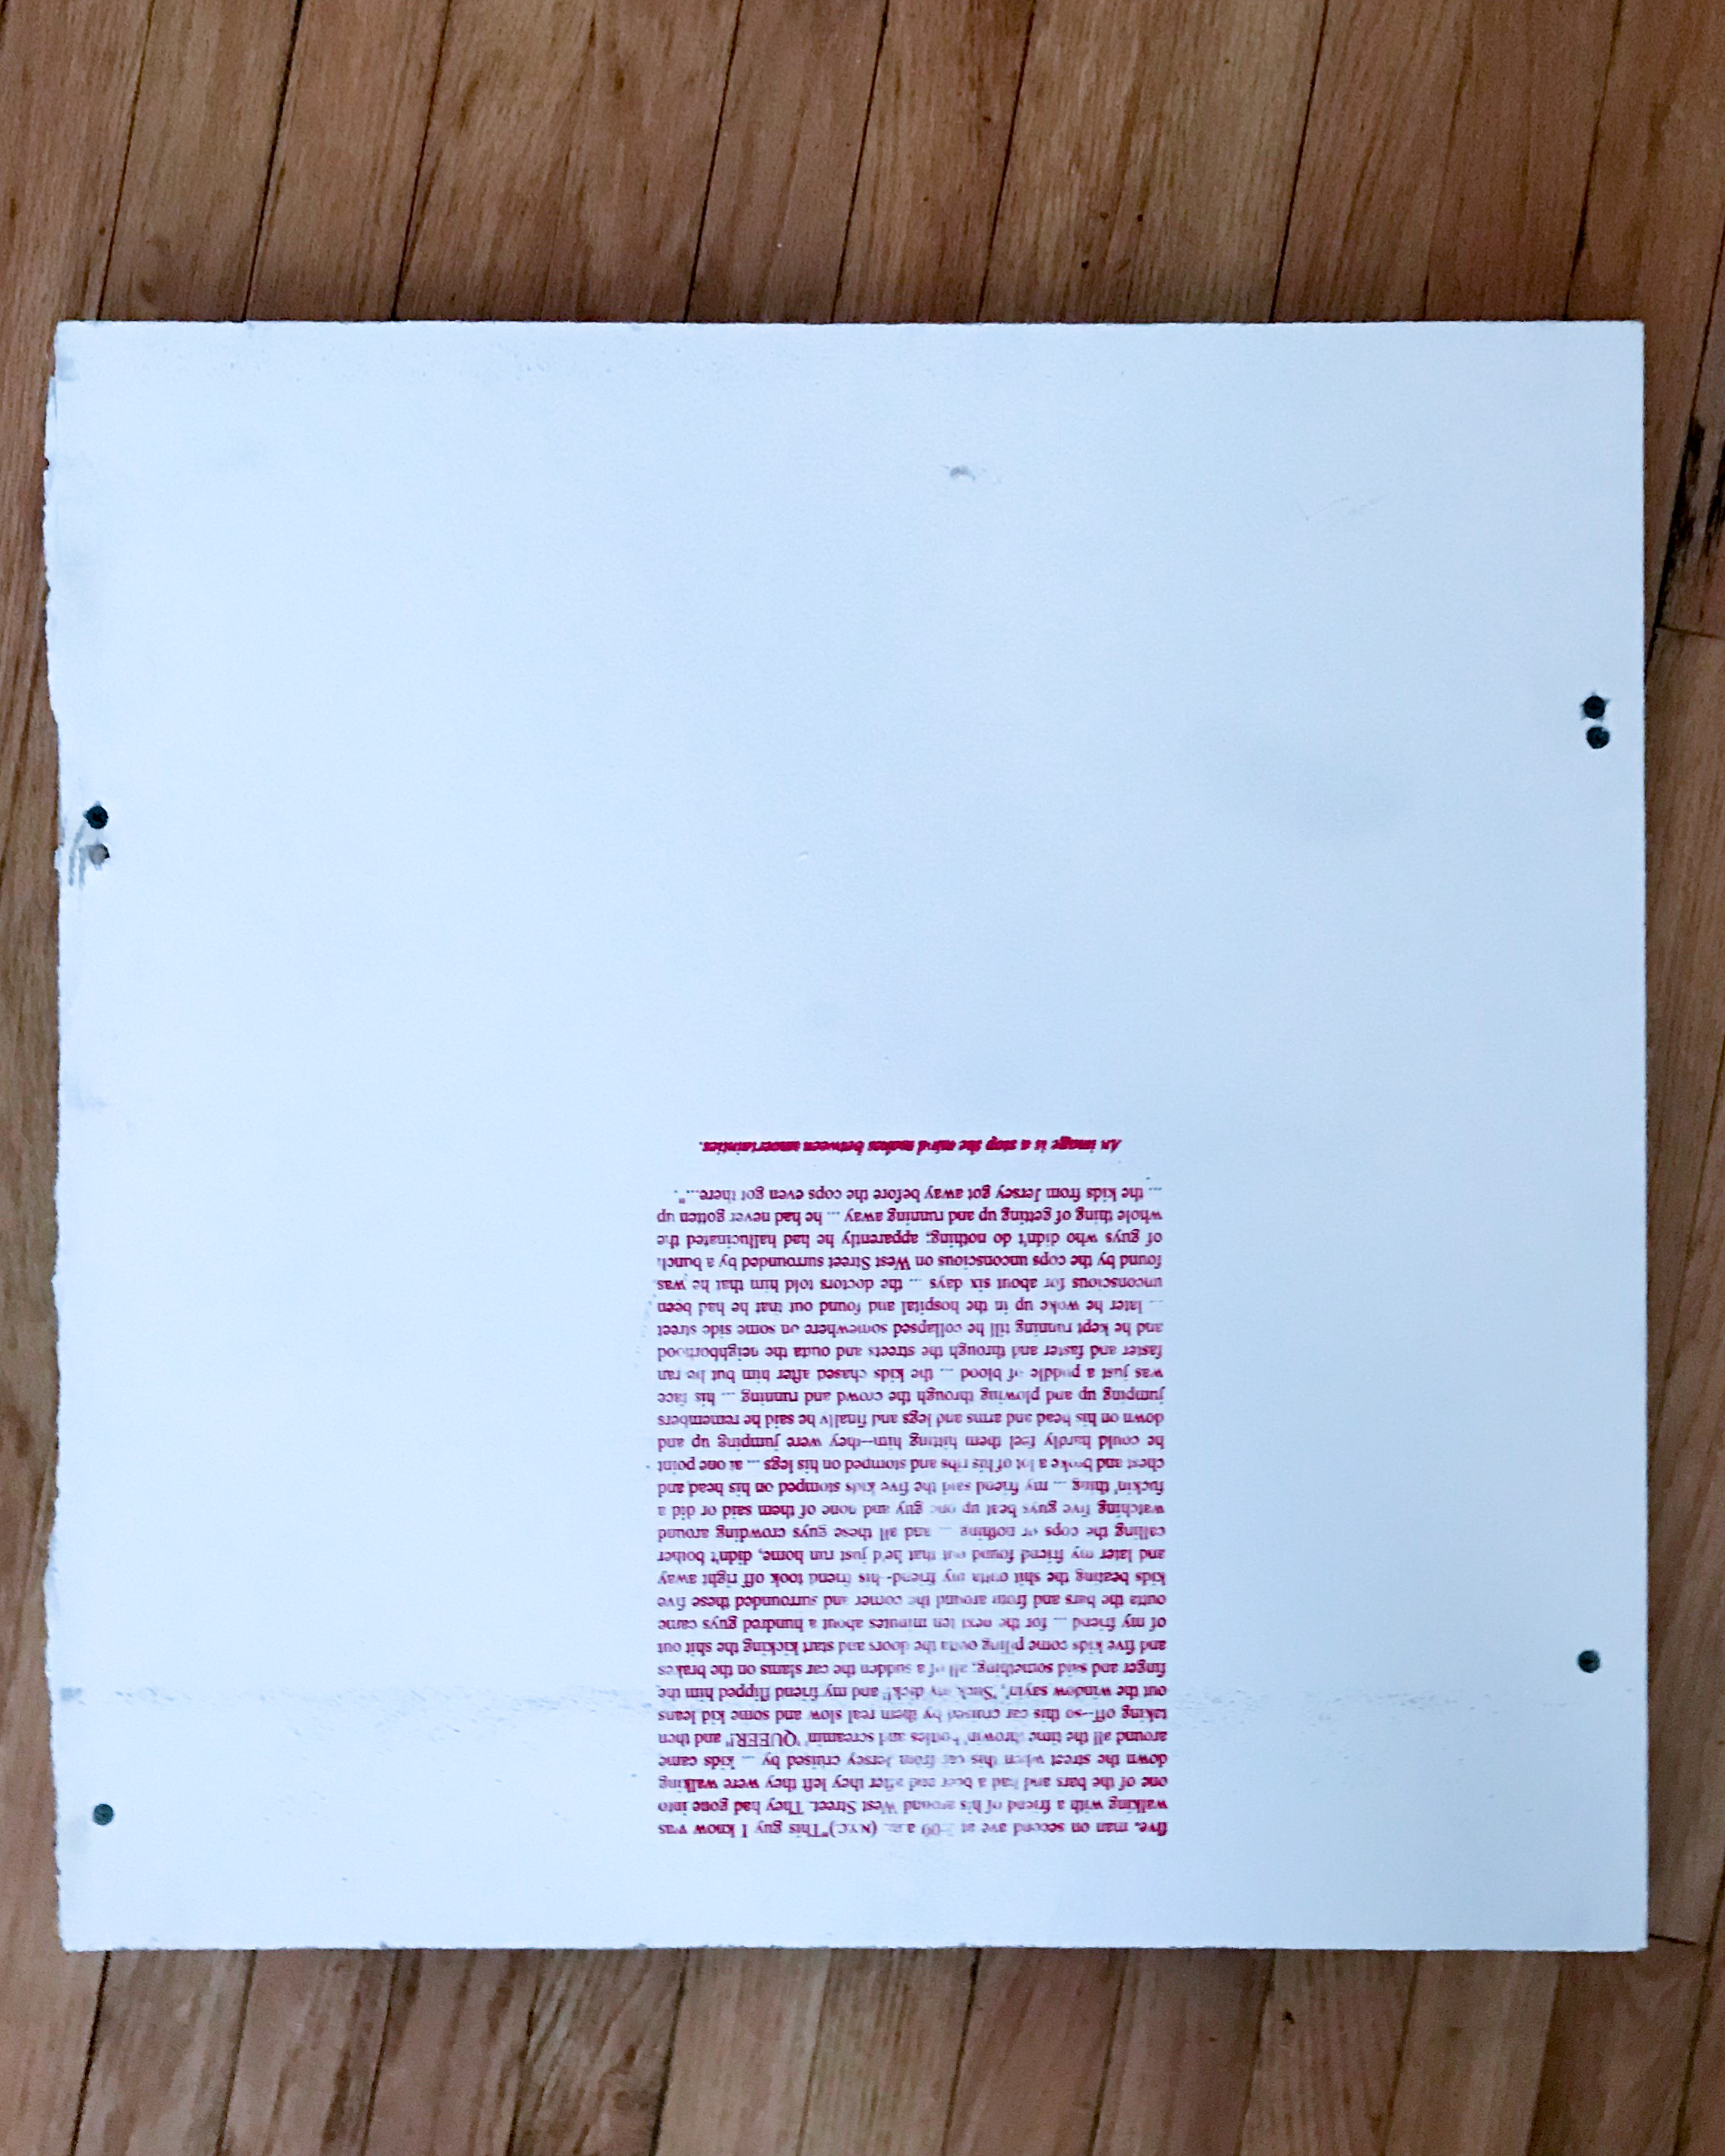 Evan Fusco,  language proposition III (reinvestment in certain important quotations), 2018 , screenprint on wall panel, an excerpt from David Wojnarowicz's  Close to the Knives (A Memoir of Disintegration)  from p. 70-71, a quote from Djuna Barnes book  Nightwood  found on p. 14 of Gregg Bordowitz's book on General Idea's  Imagevirus